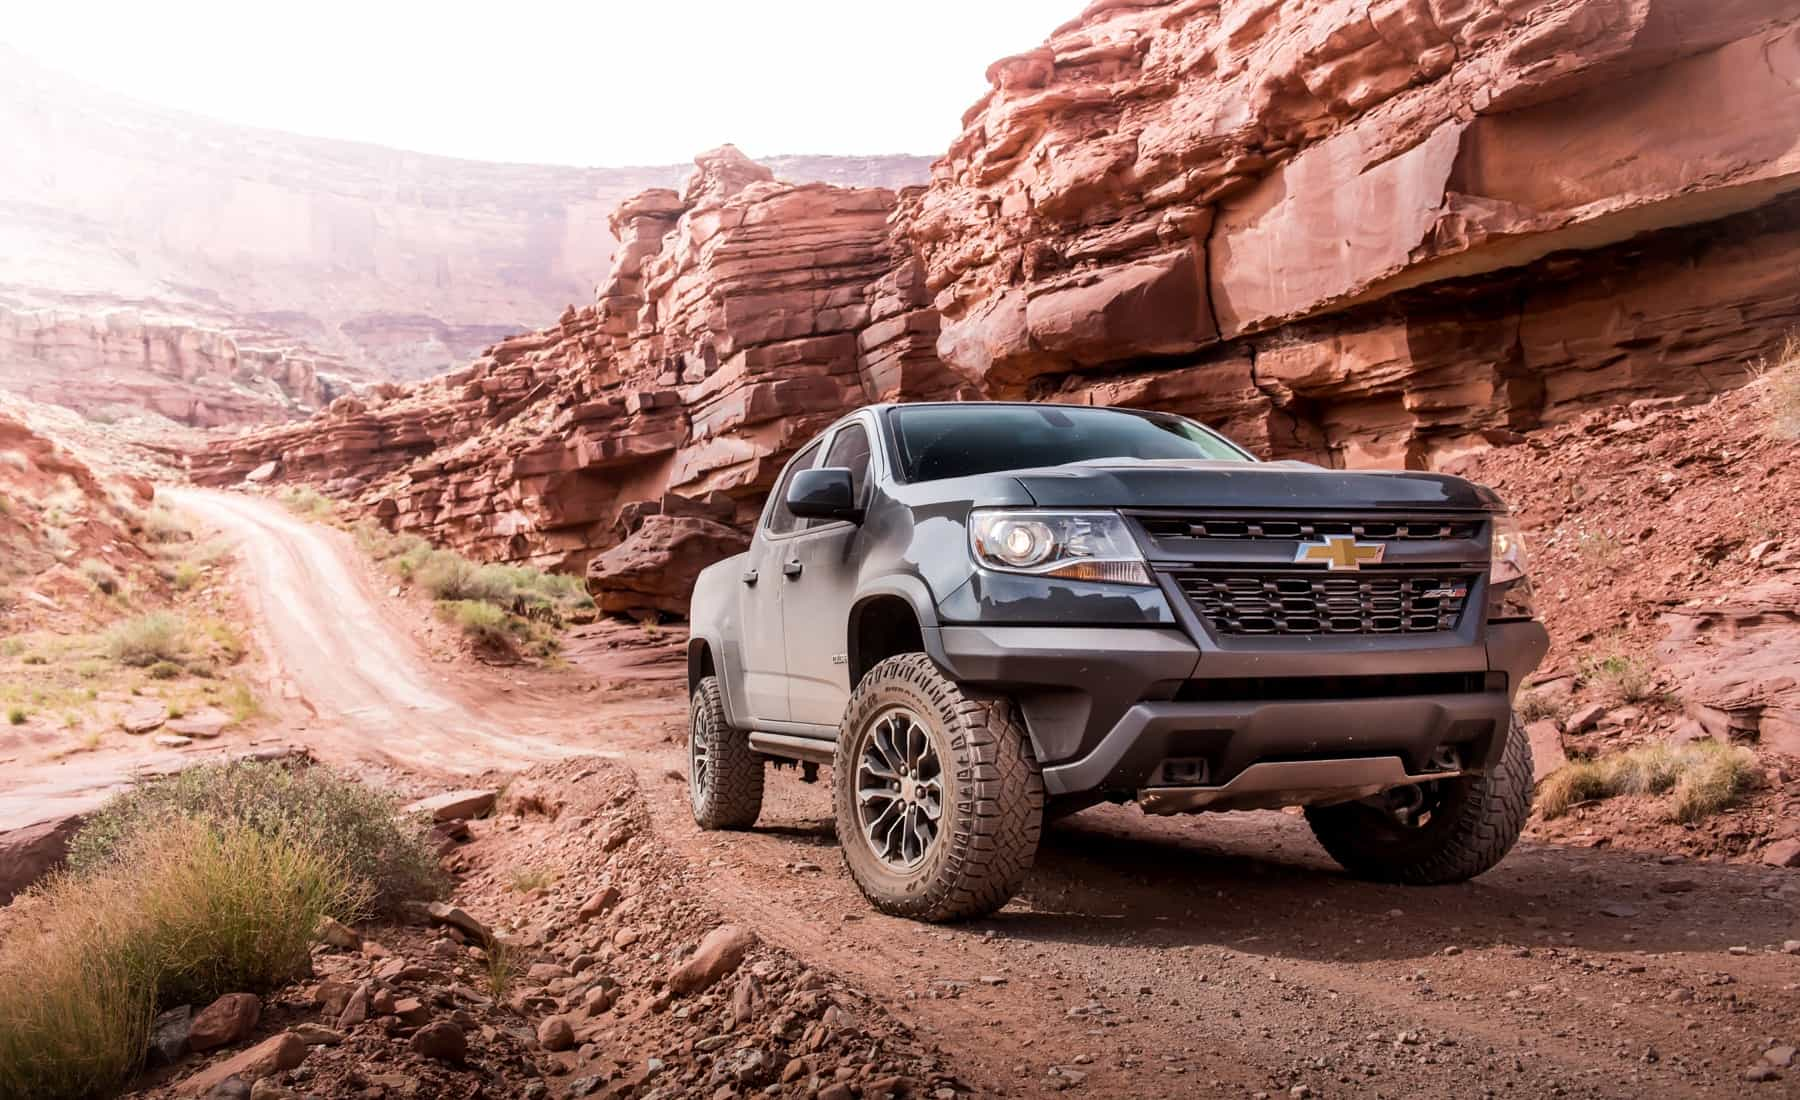 2017 Chevrolet Colorado ZR2 Crew Cab Diesel Exterior Front And Side (View 16 of 16)